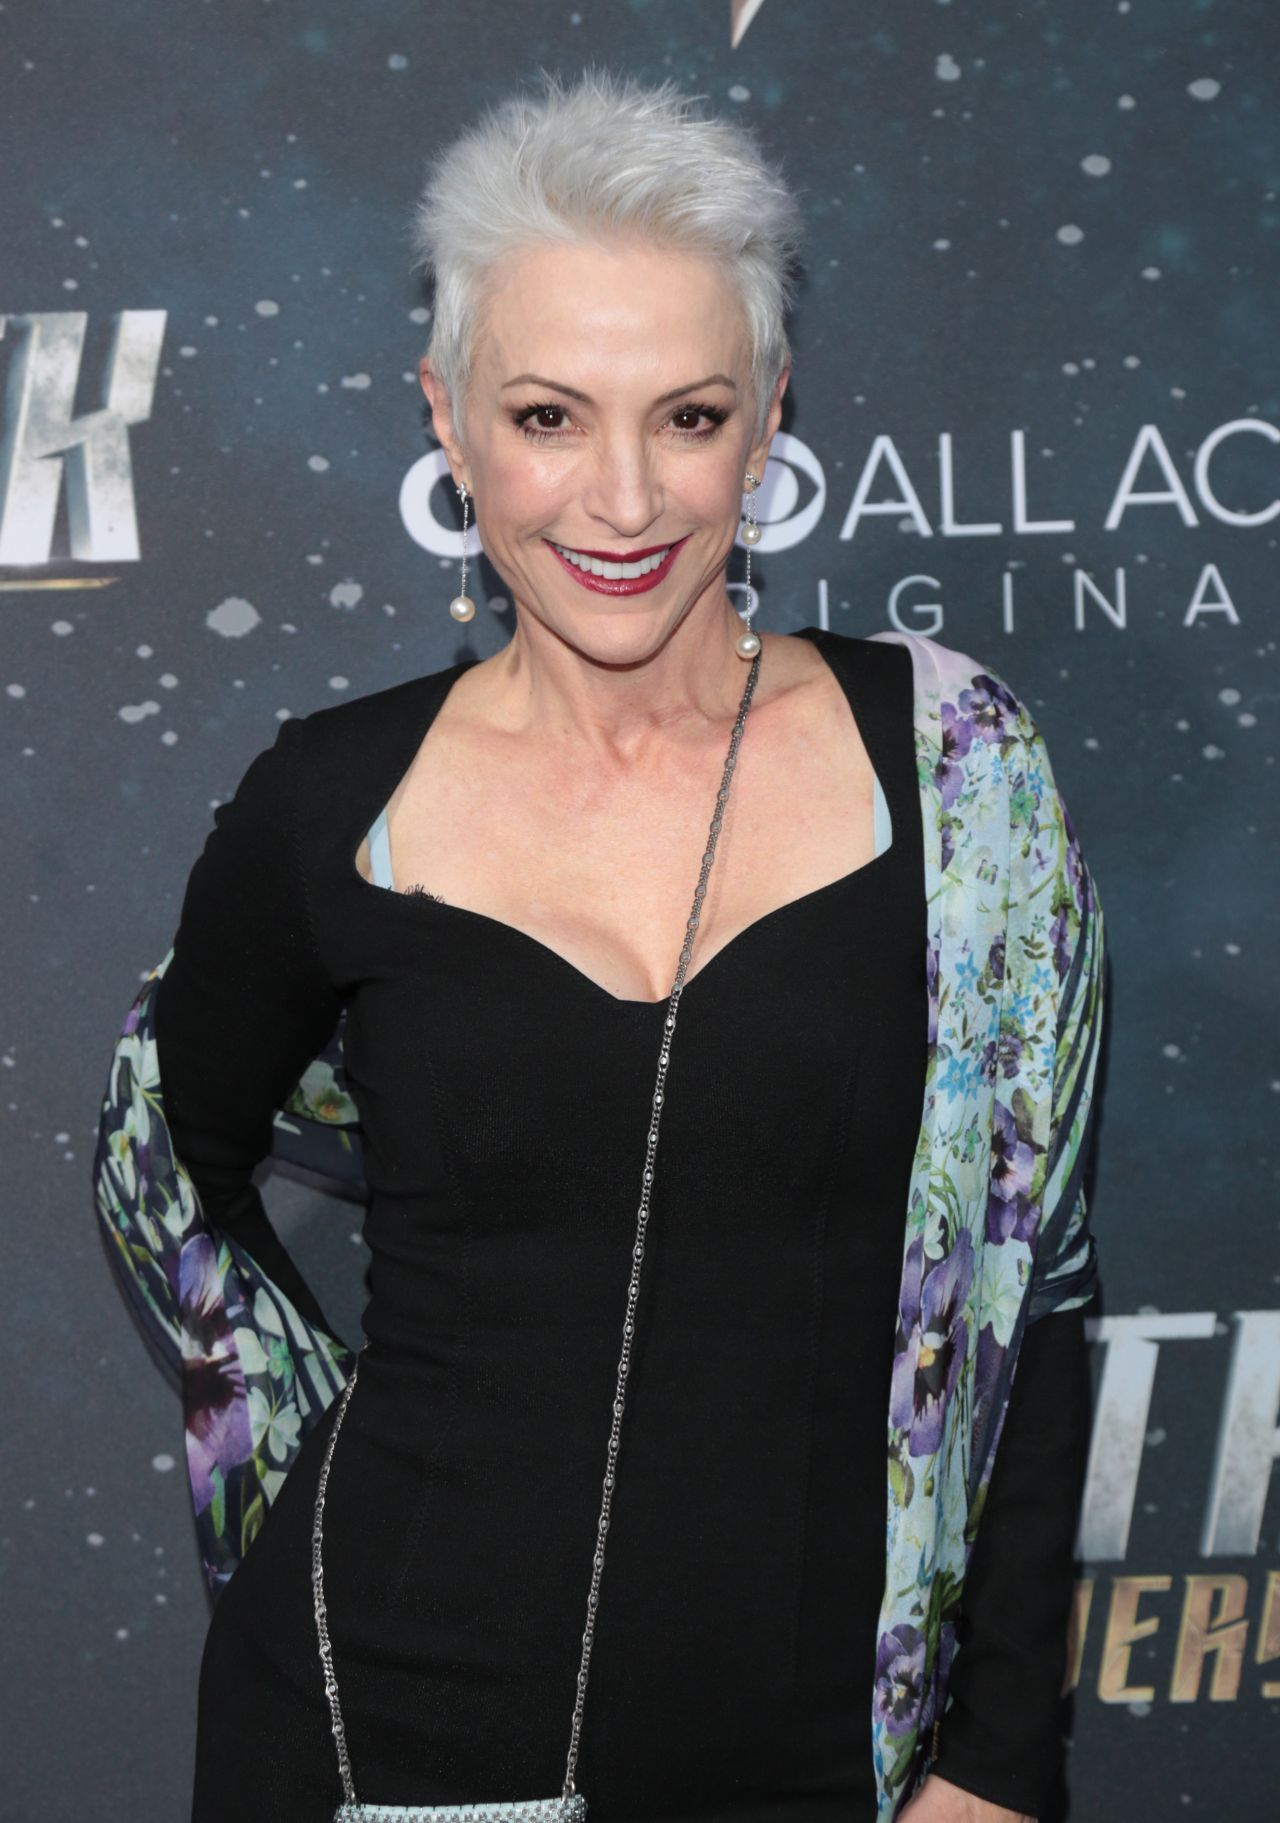 Nana Visitor fansite